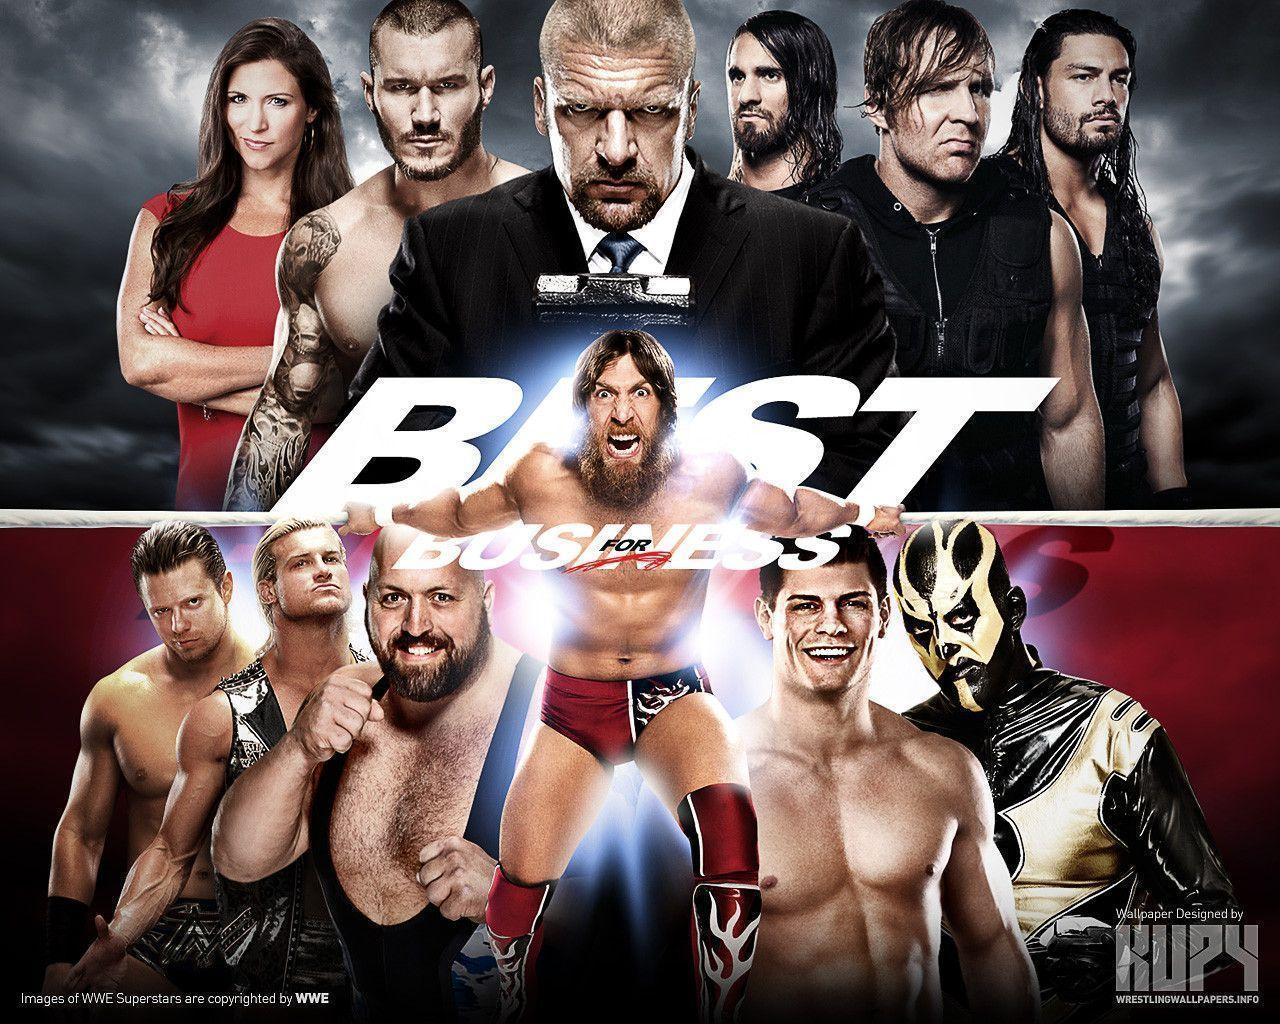 Best for Business - WWE Wallpaper (36292031) - Fanpop